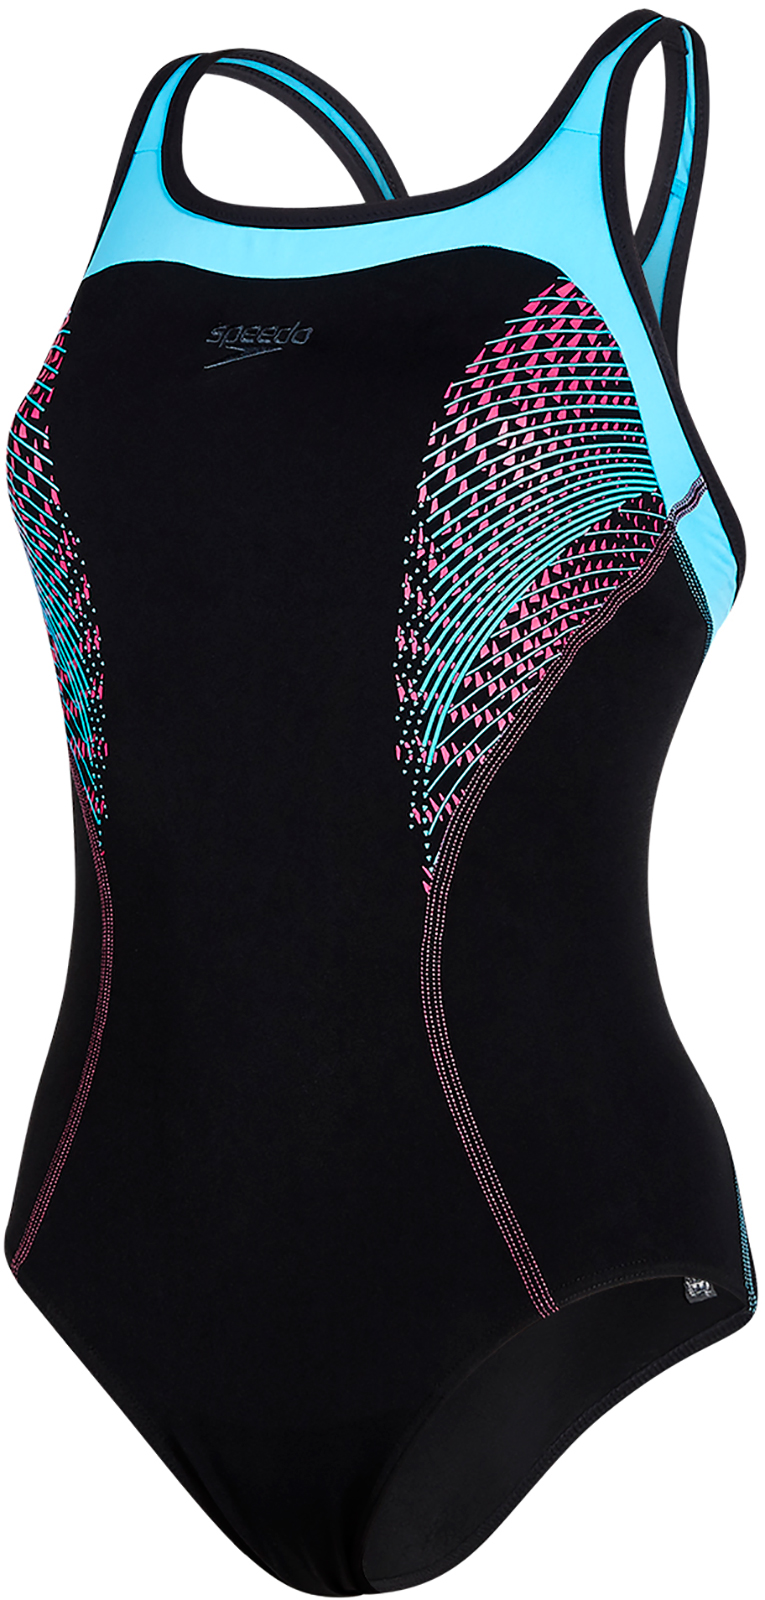 Speedo Women's Speedo Fit Kickback | swim_clothes